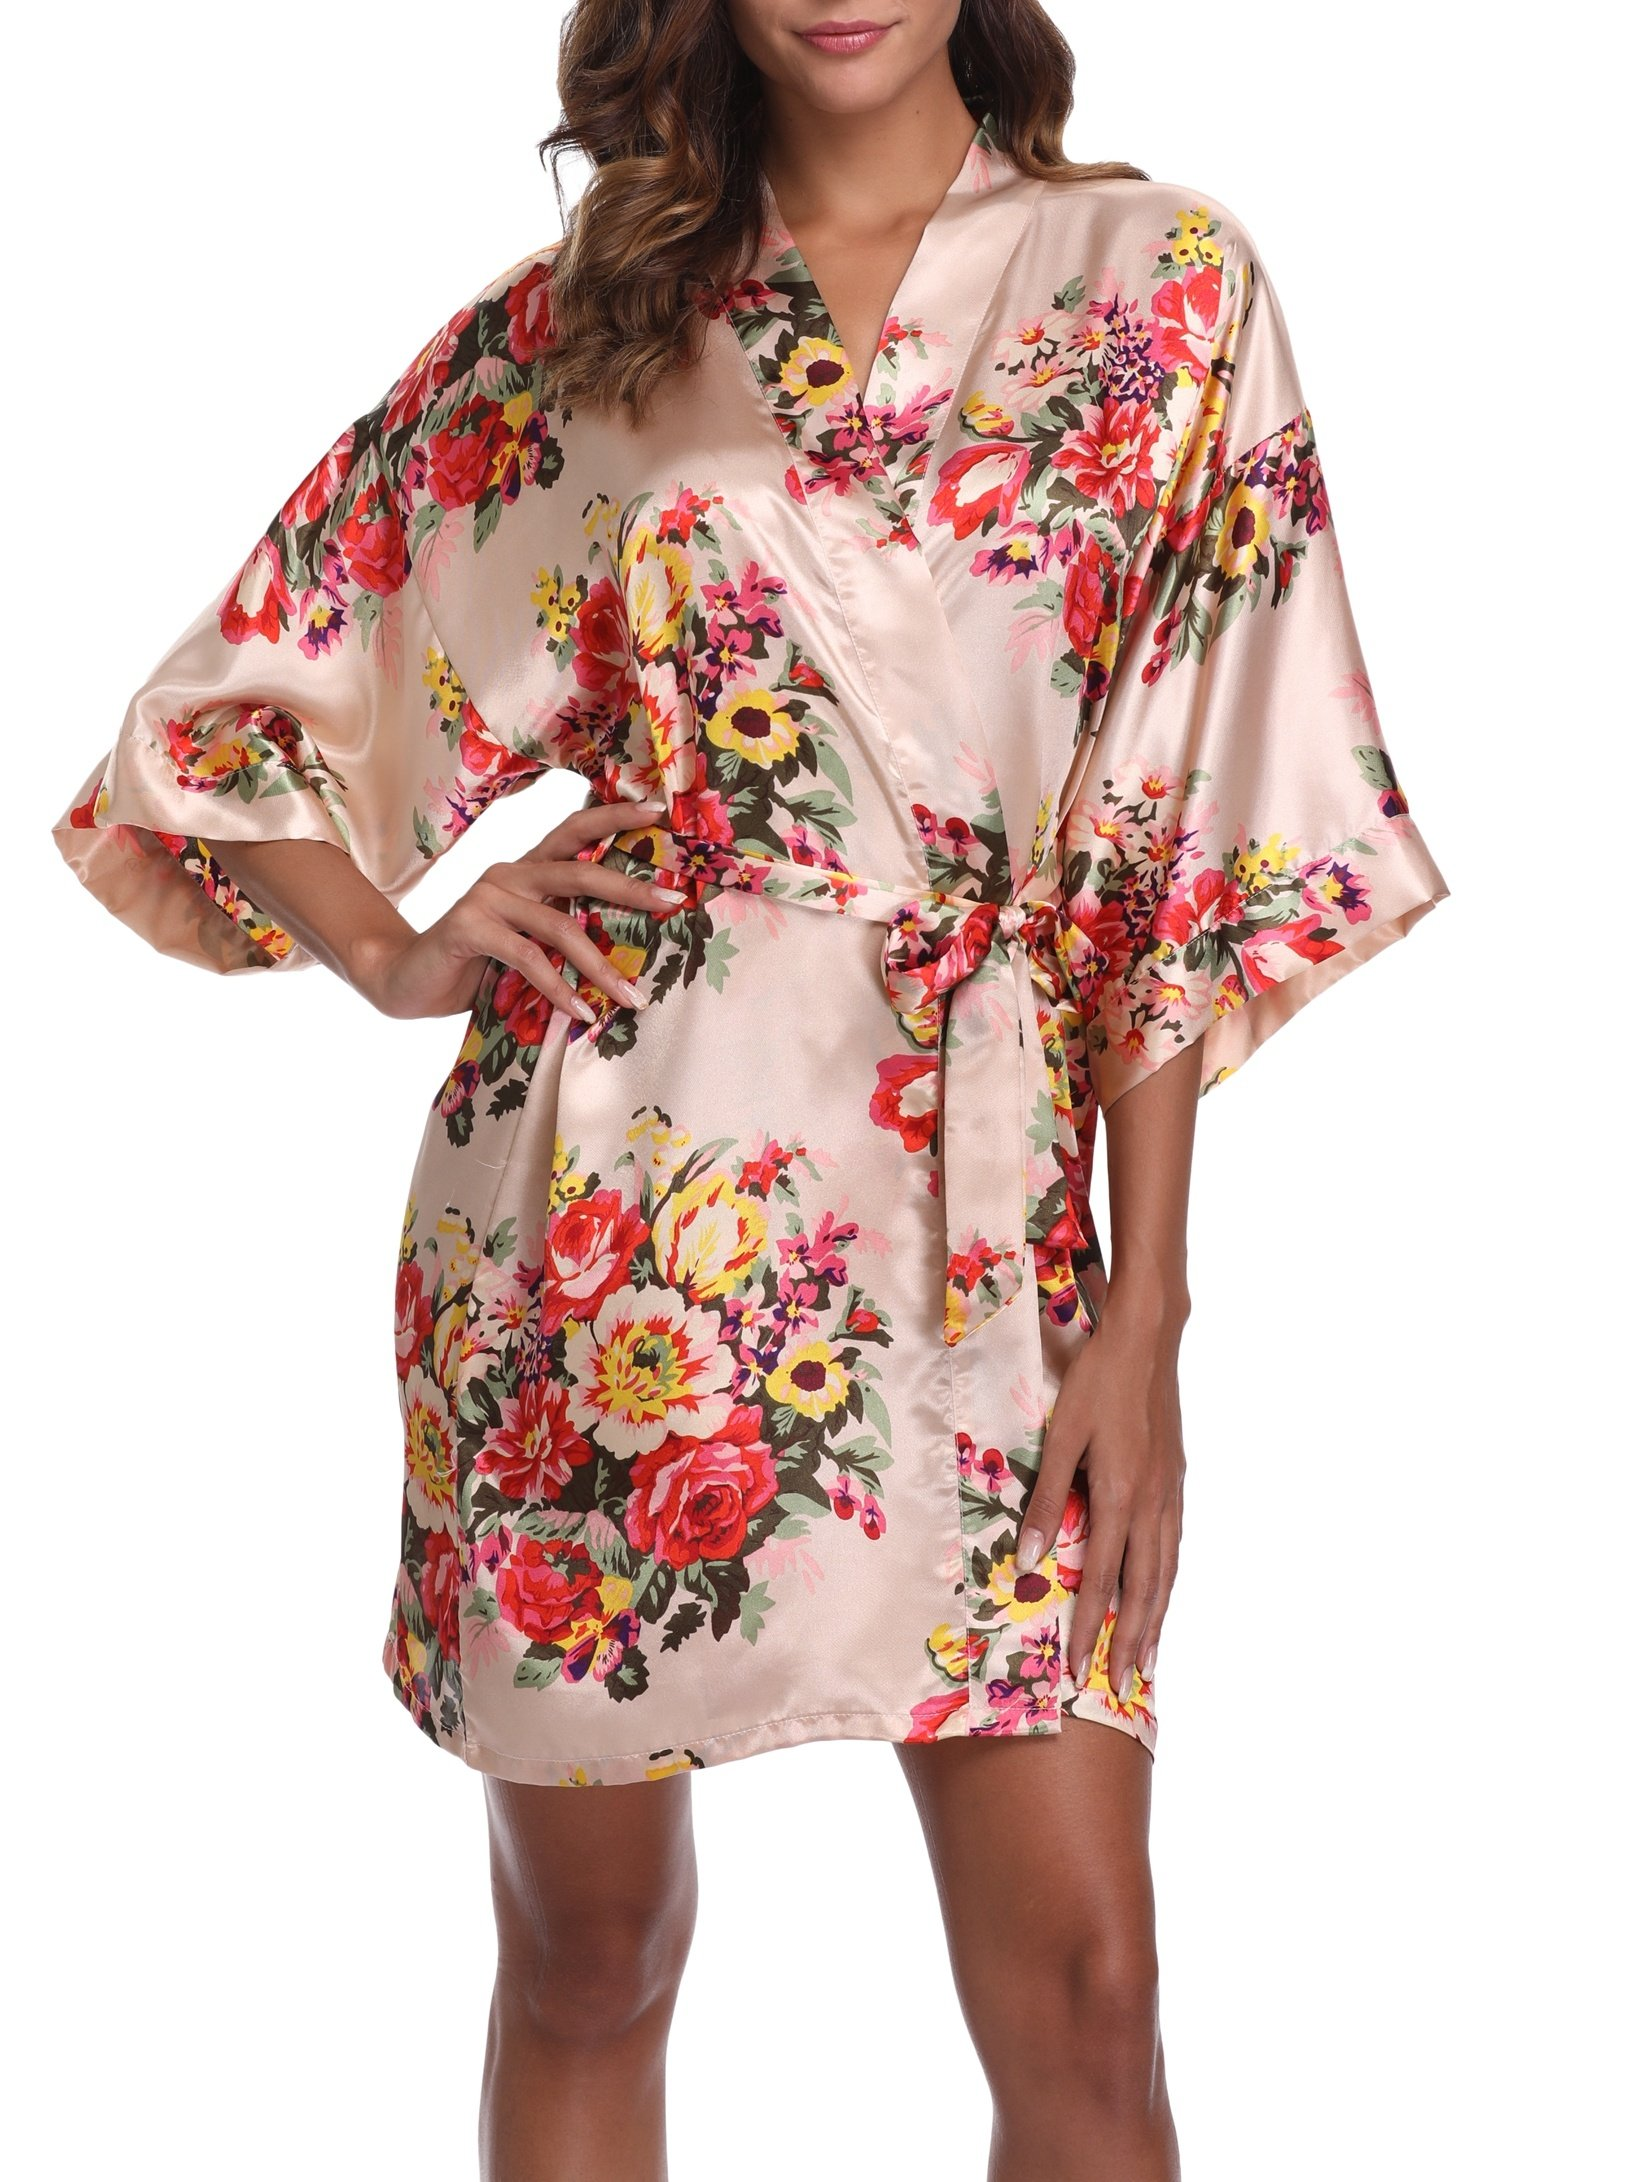 1stmall Floral Satin Kimono Short Style Bridesmaids Robes for Women, Champagne XL